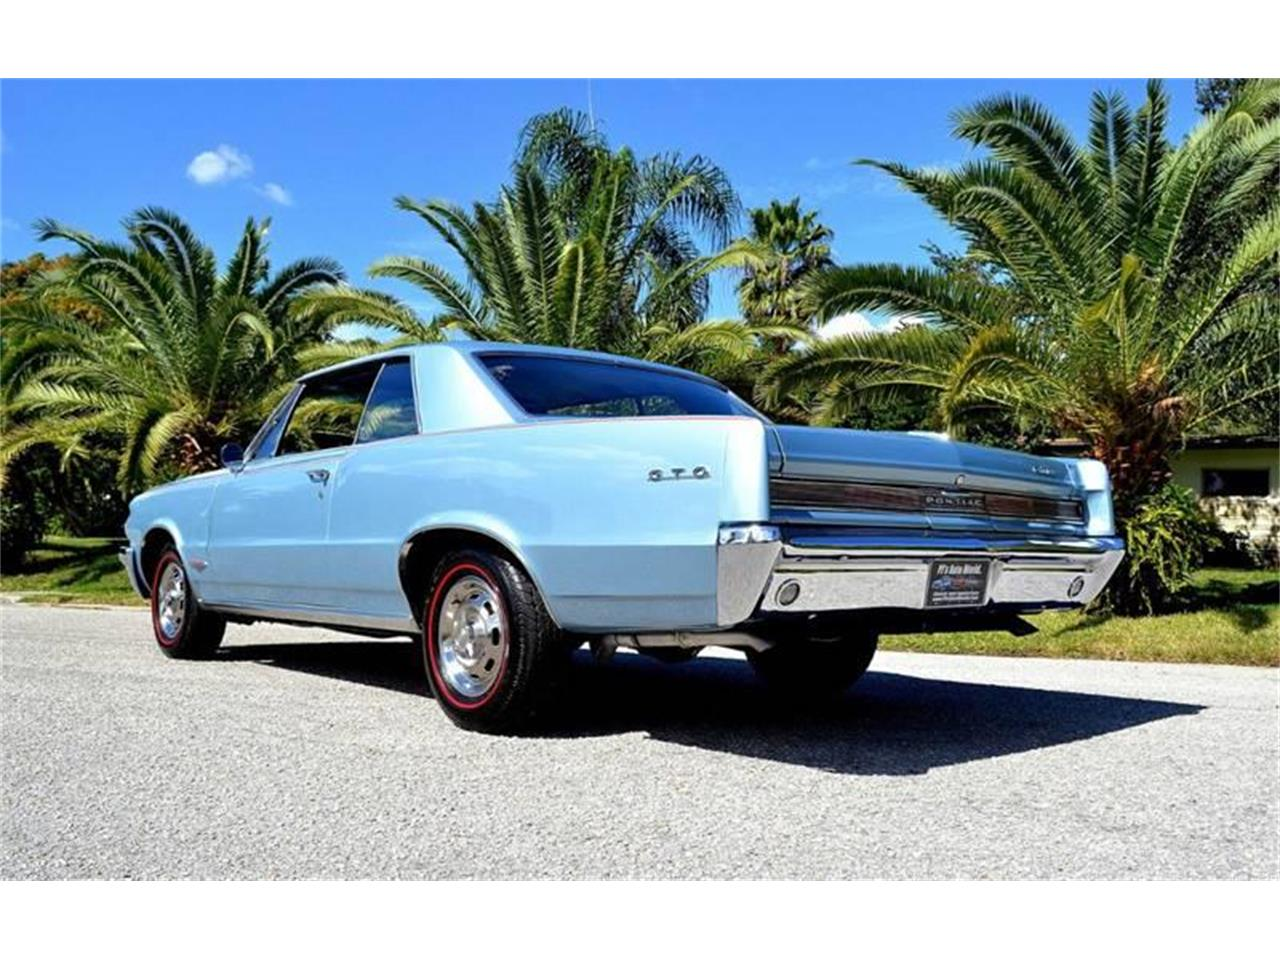 Large Picture of 1964 Pontiac GTO located in Florida - $44,900.00 Offered by PJ's Auto World - OTUJ